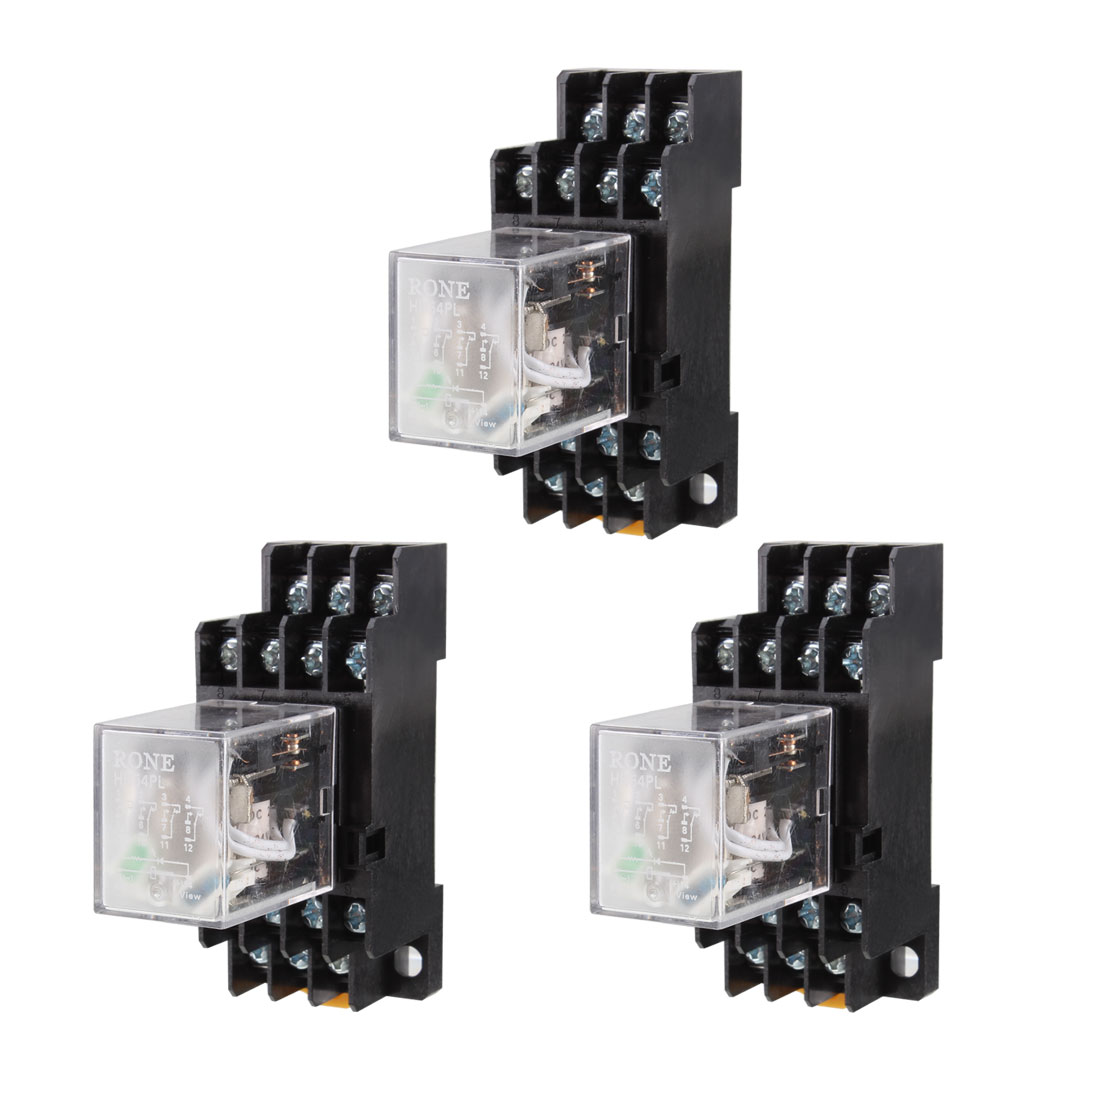 HH54PL DC 24V Coil 4PDT 14Pin 35mm DIN Rail Electromagnetic Power Relay 3 Pieces